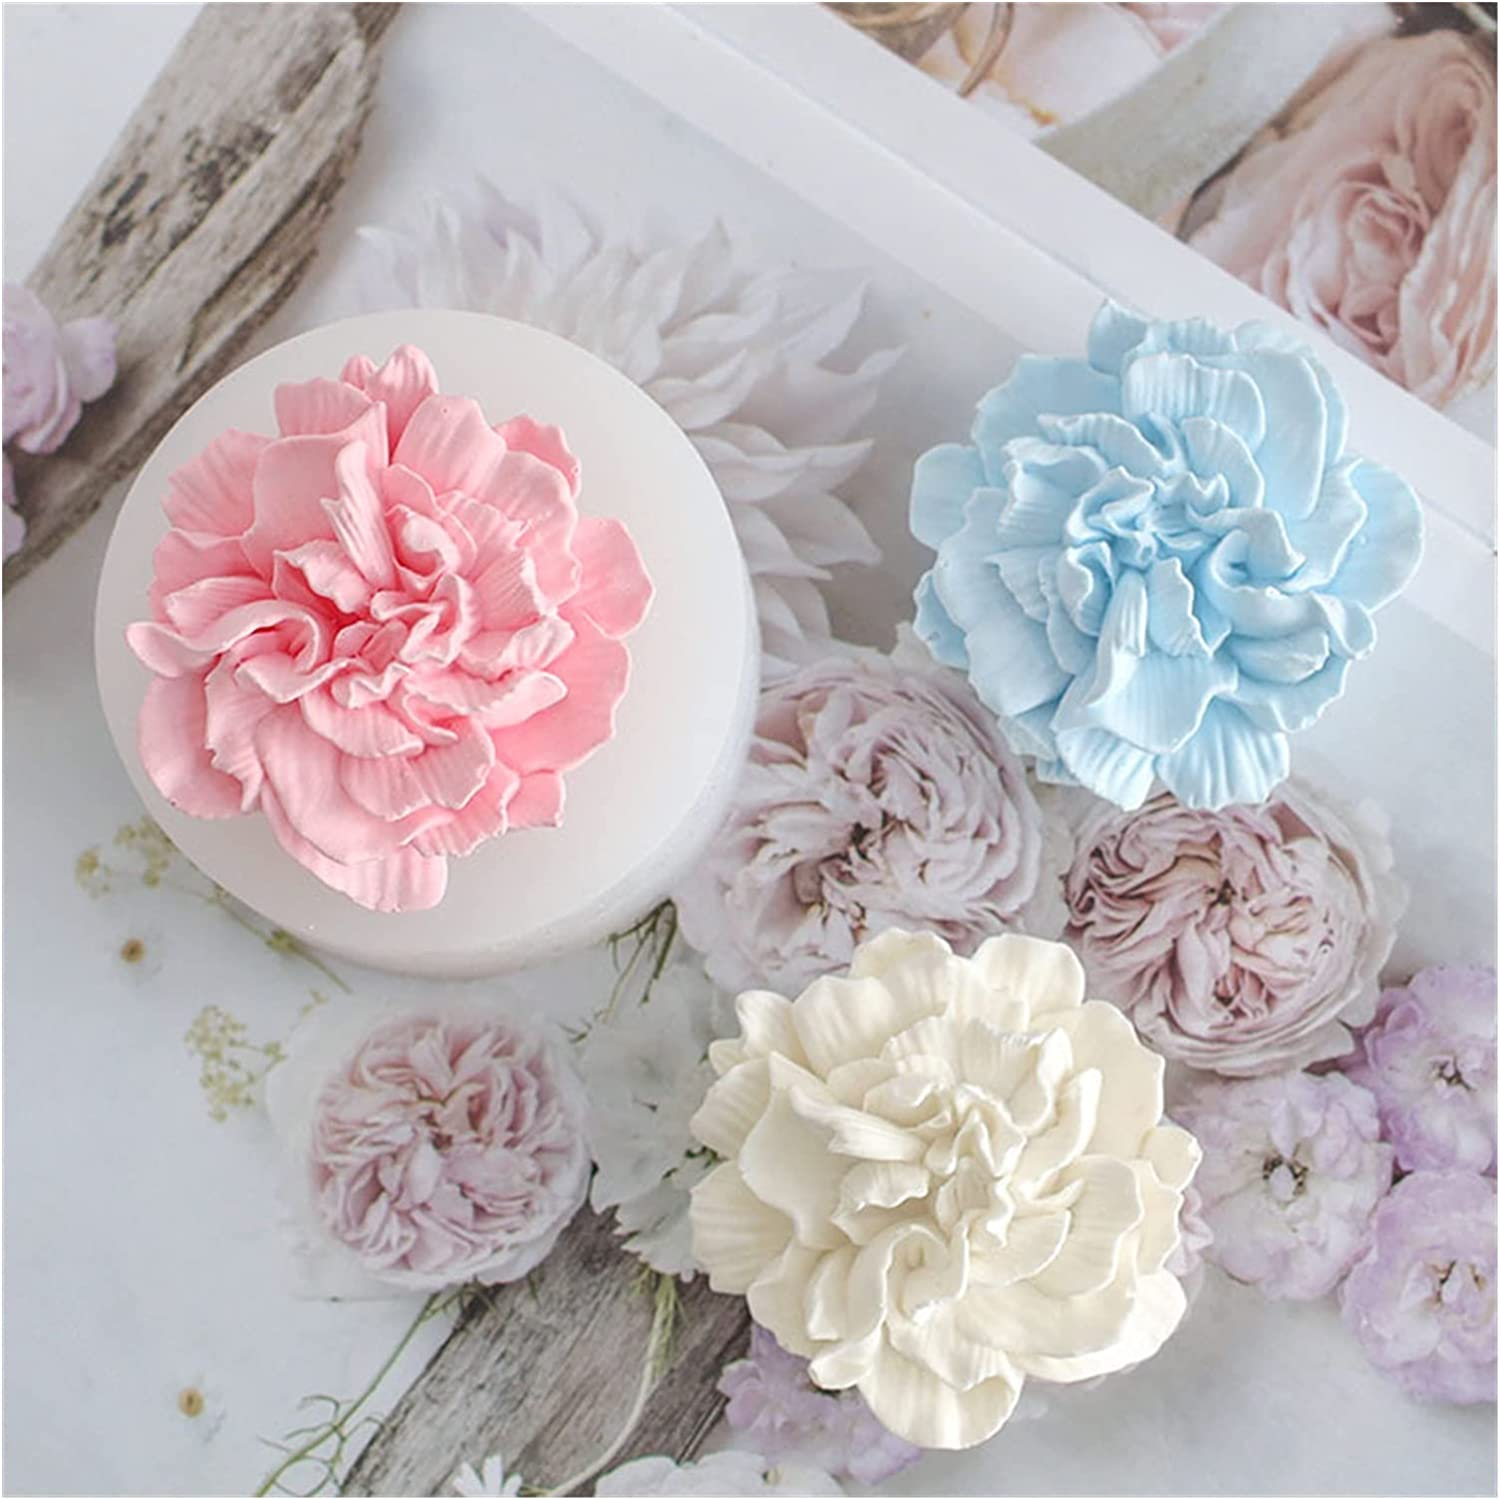 YSJJEFB Resin Molds Rose shipfree Spring new work Flower Silico soap Mold Making for